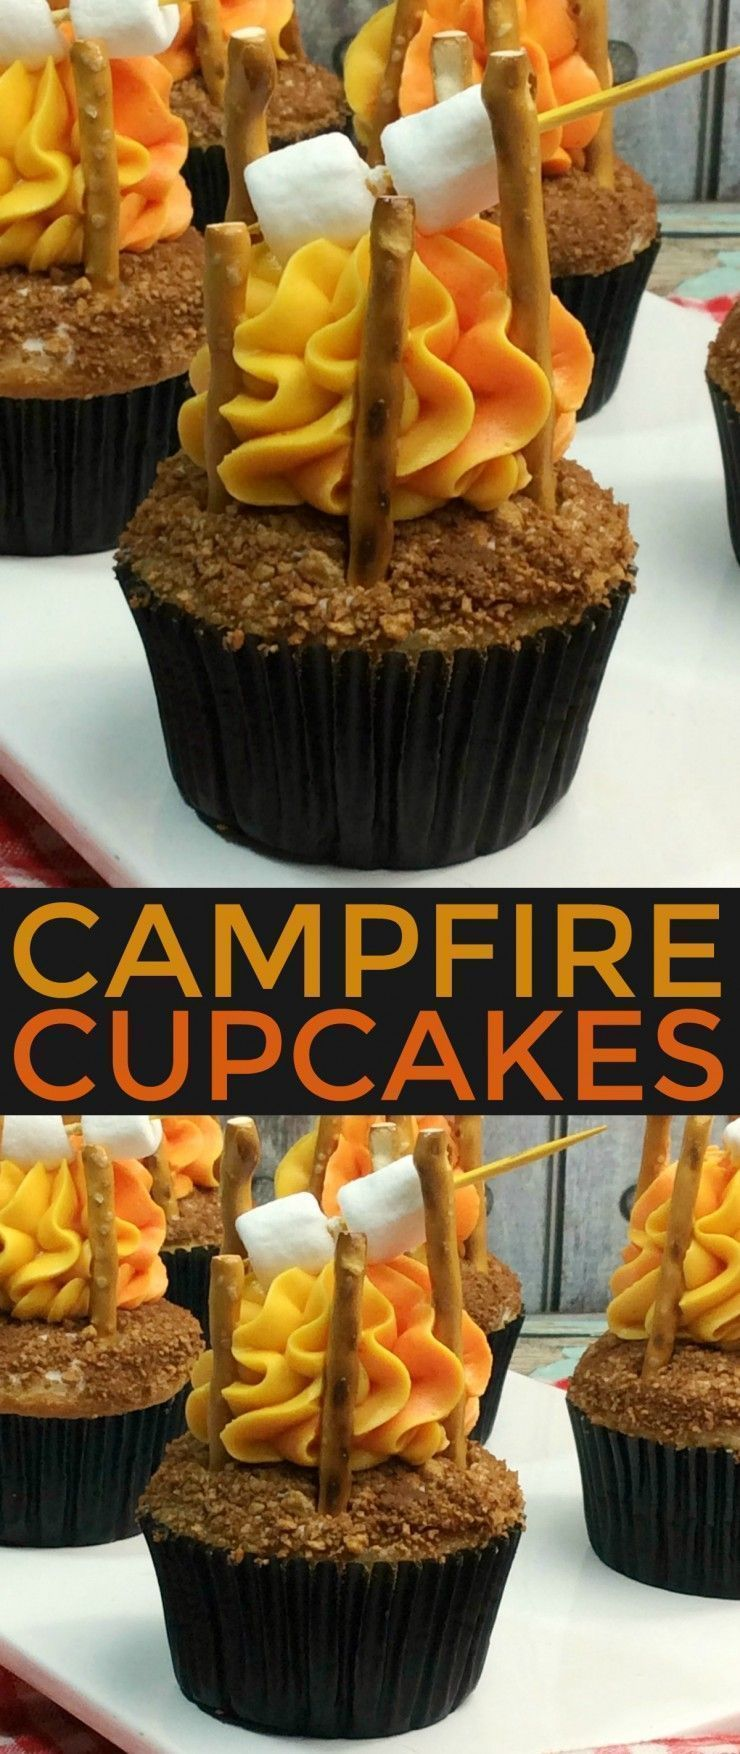 Fire Cupcakes These Campfire Cupcakes are a fun summer treat. What an adorable dessert to take along for a camping trip or camping themed party.These Campfire Cupcakes are a fun summer treat. What an adorable dessert to take along for a camping trip or camping themed party.